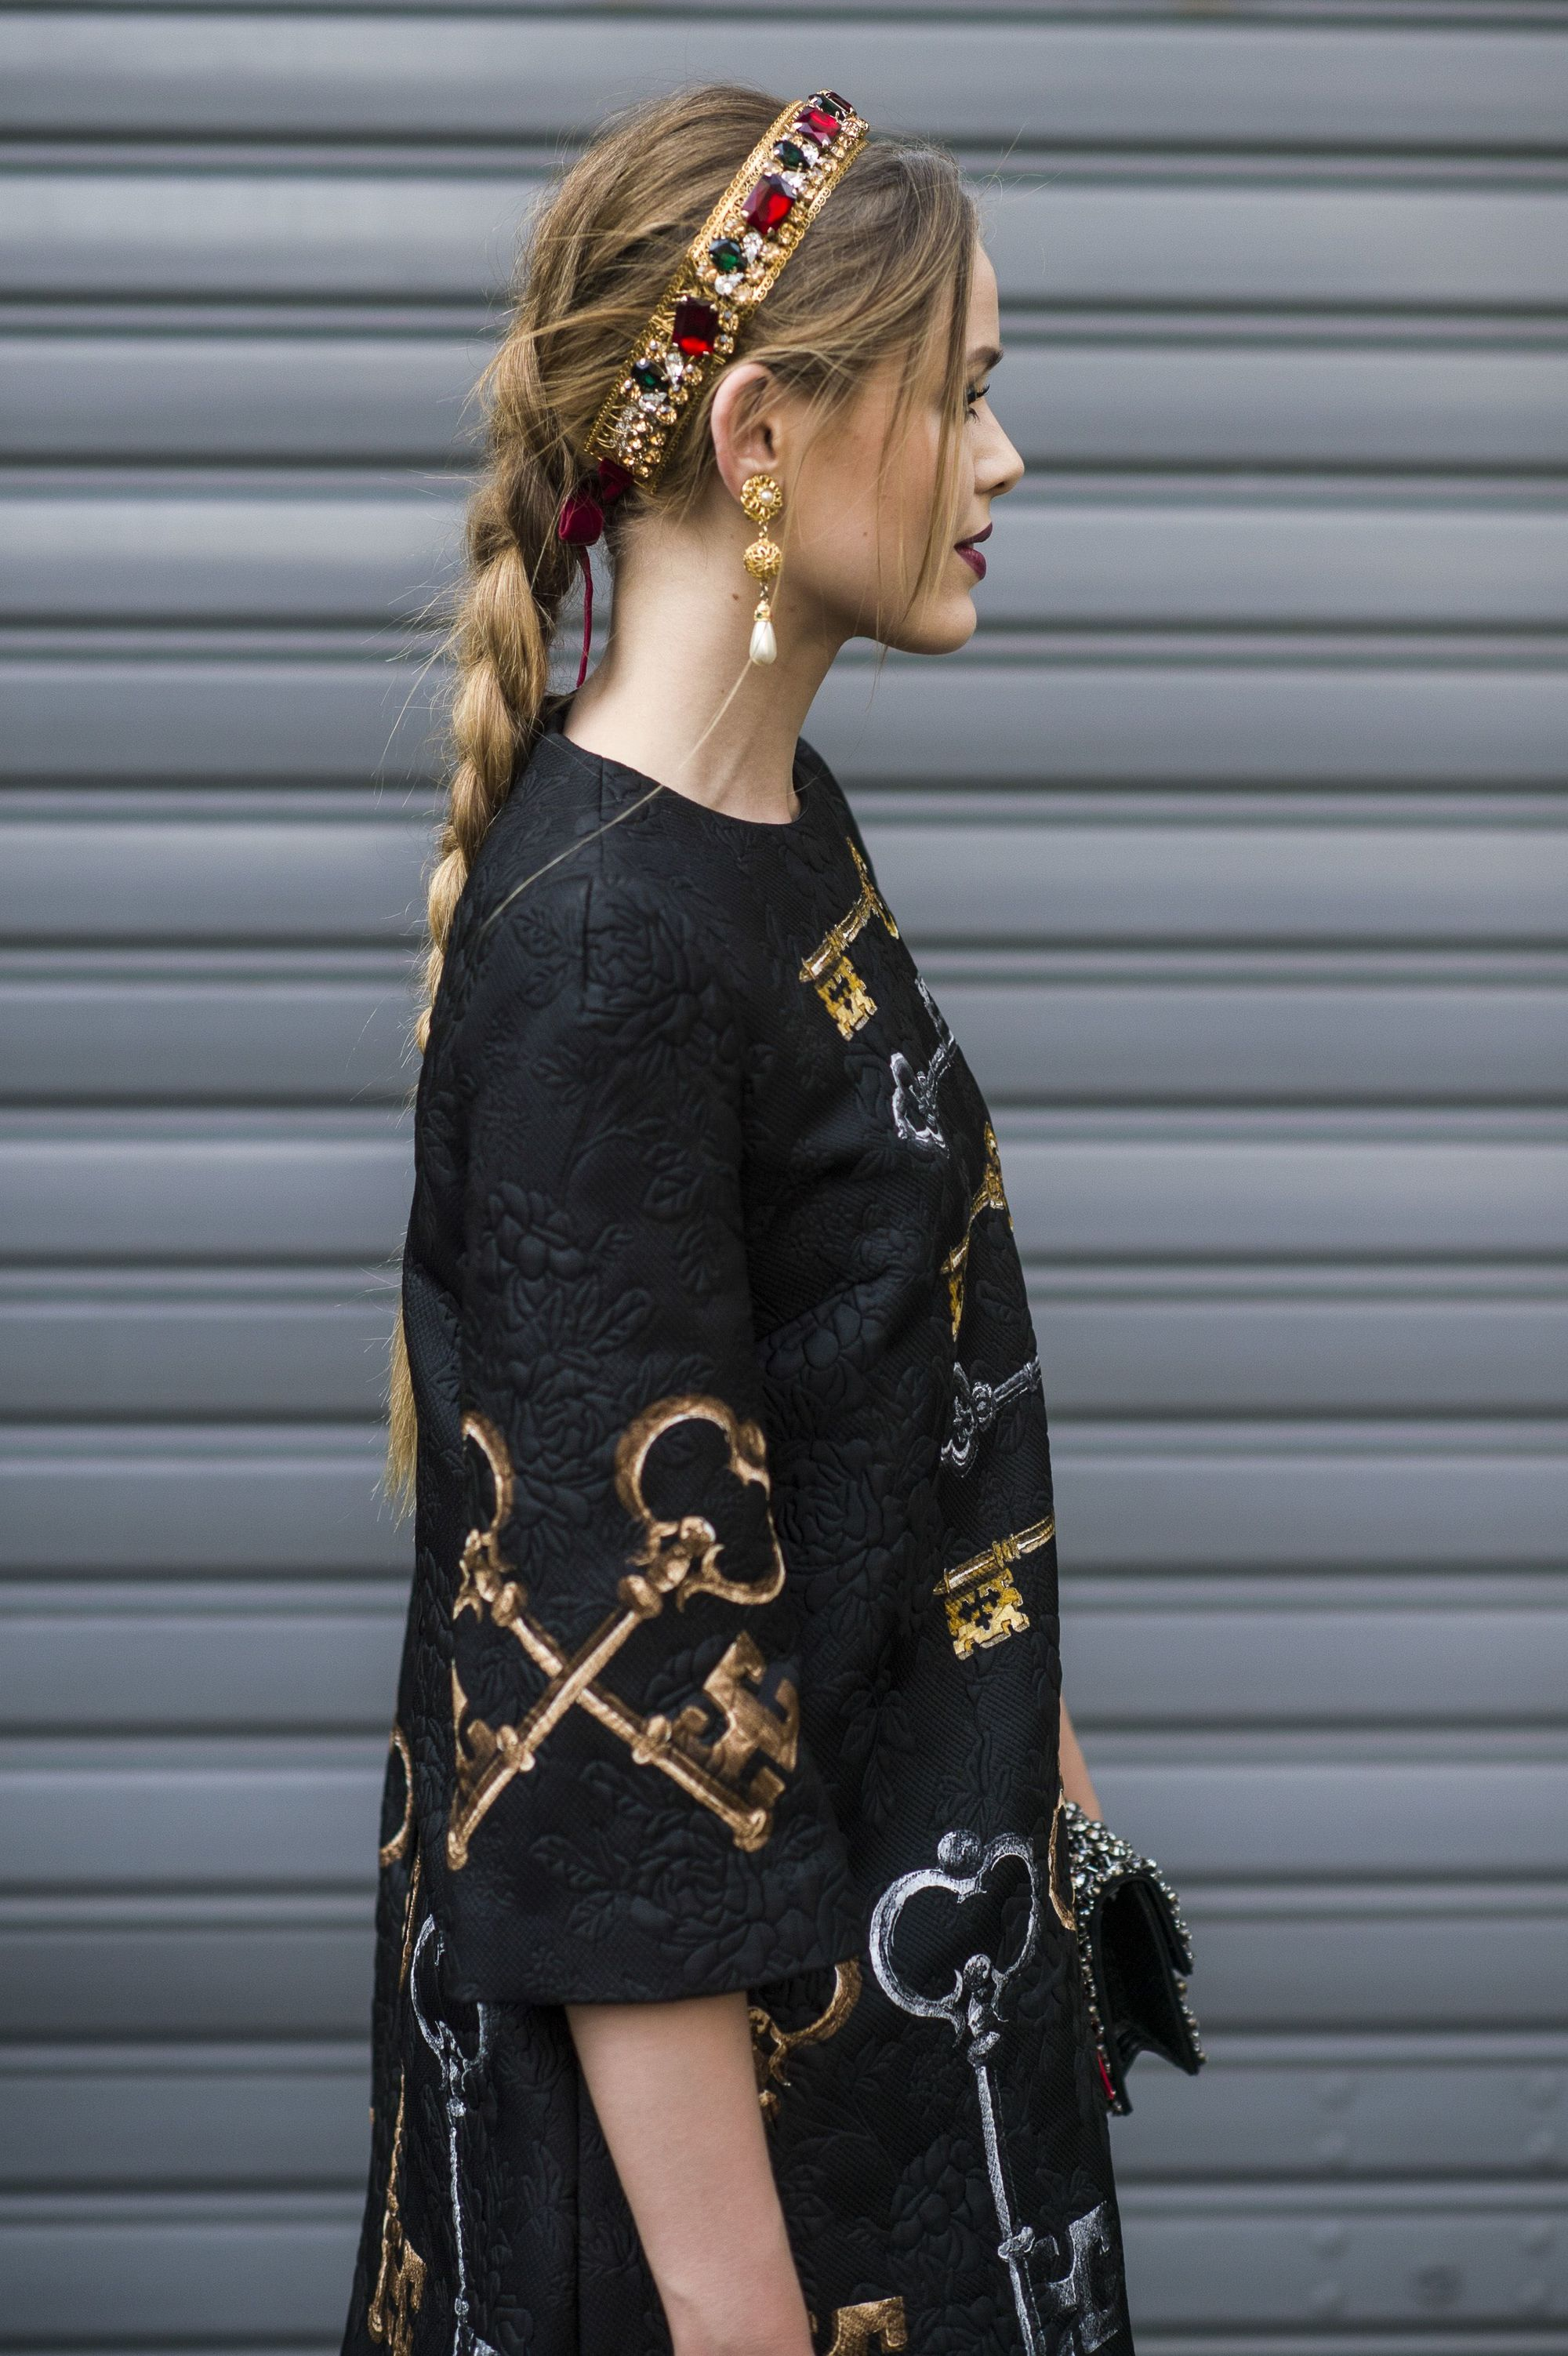 Side view of a woman with long golden light brown hair styled in a single braid, with a headband and black embroidered dress